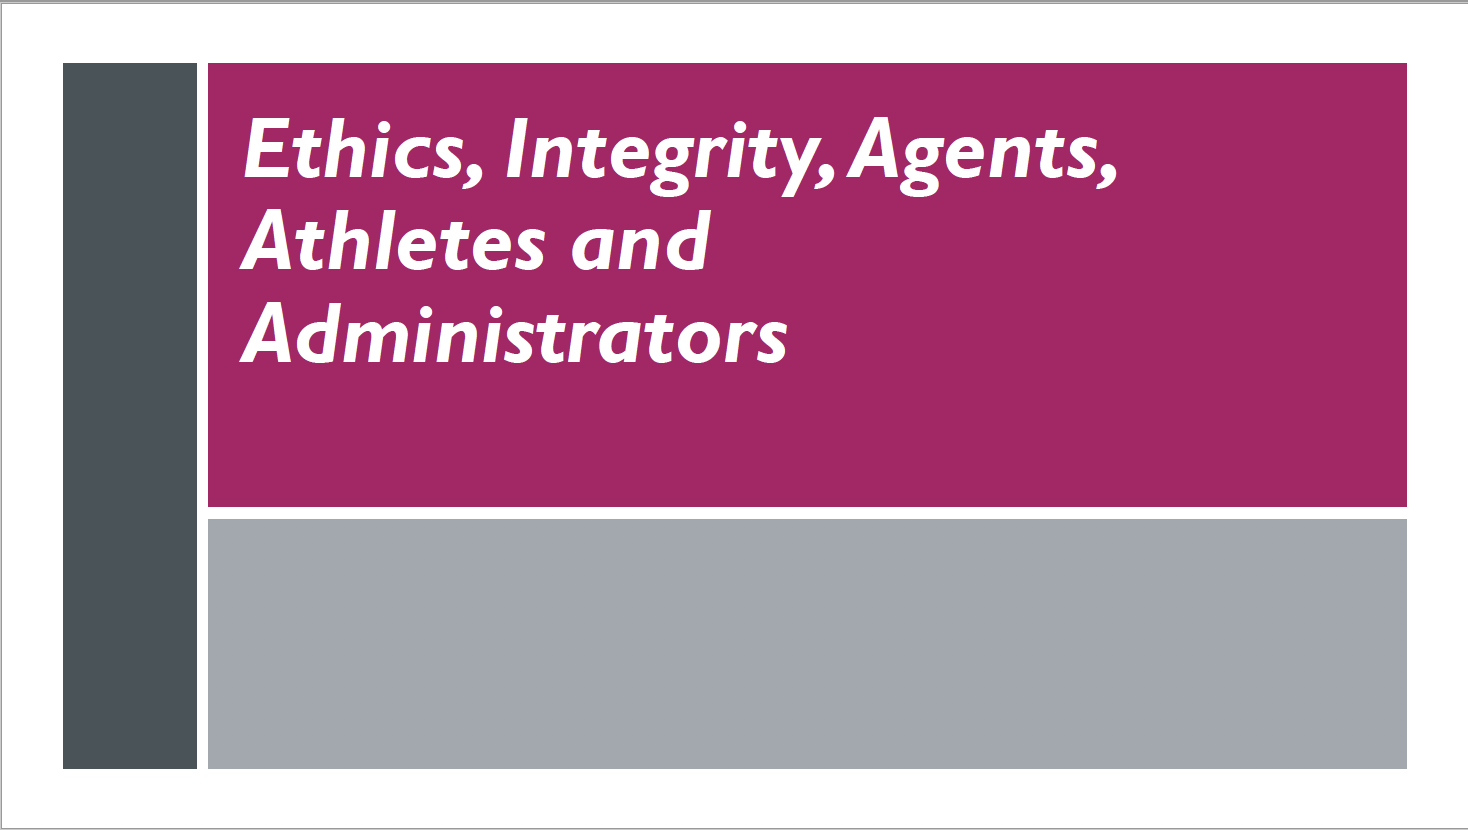 ETHICS, INTEGRITY AND THE ATHLETE